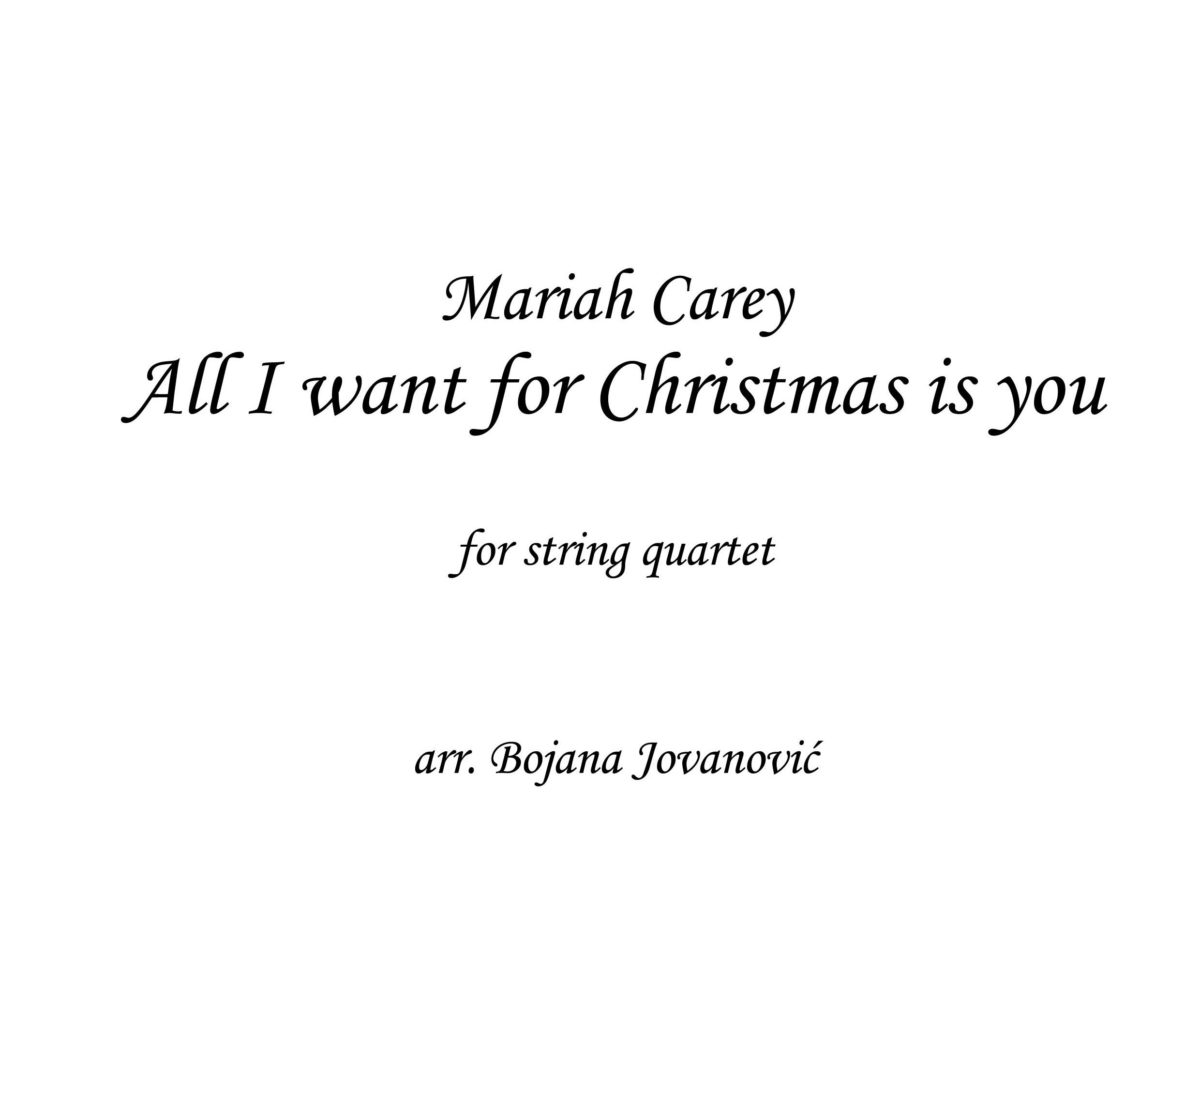 All I want for Christmas is you (Mariah Carey) - Sheet Music